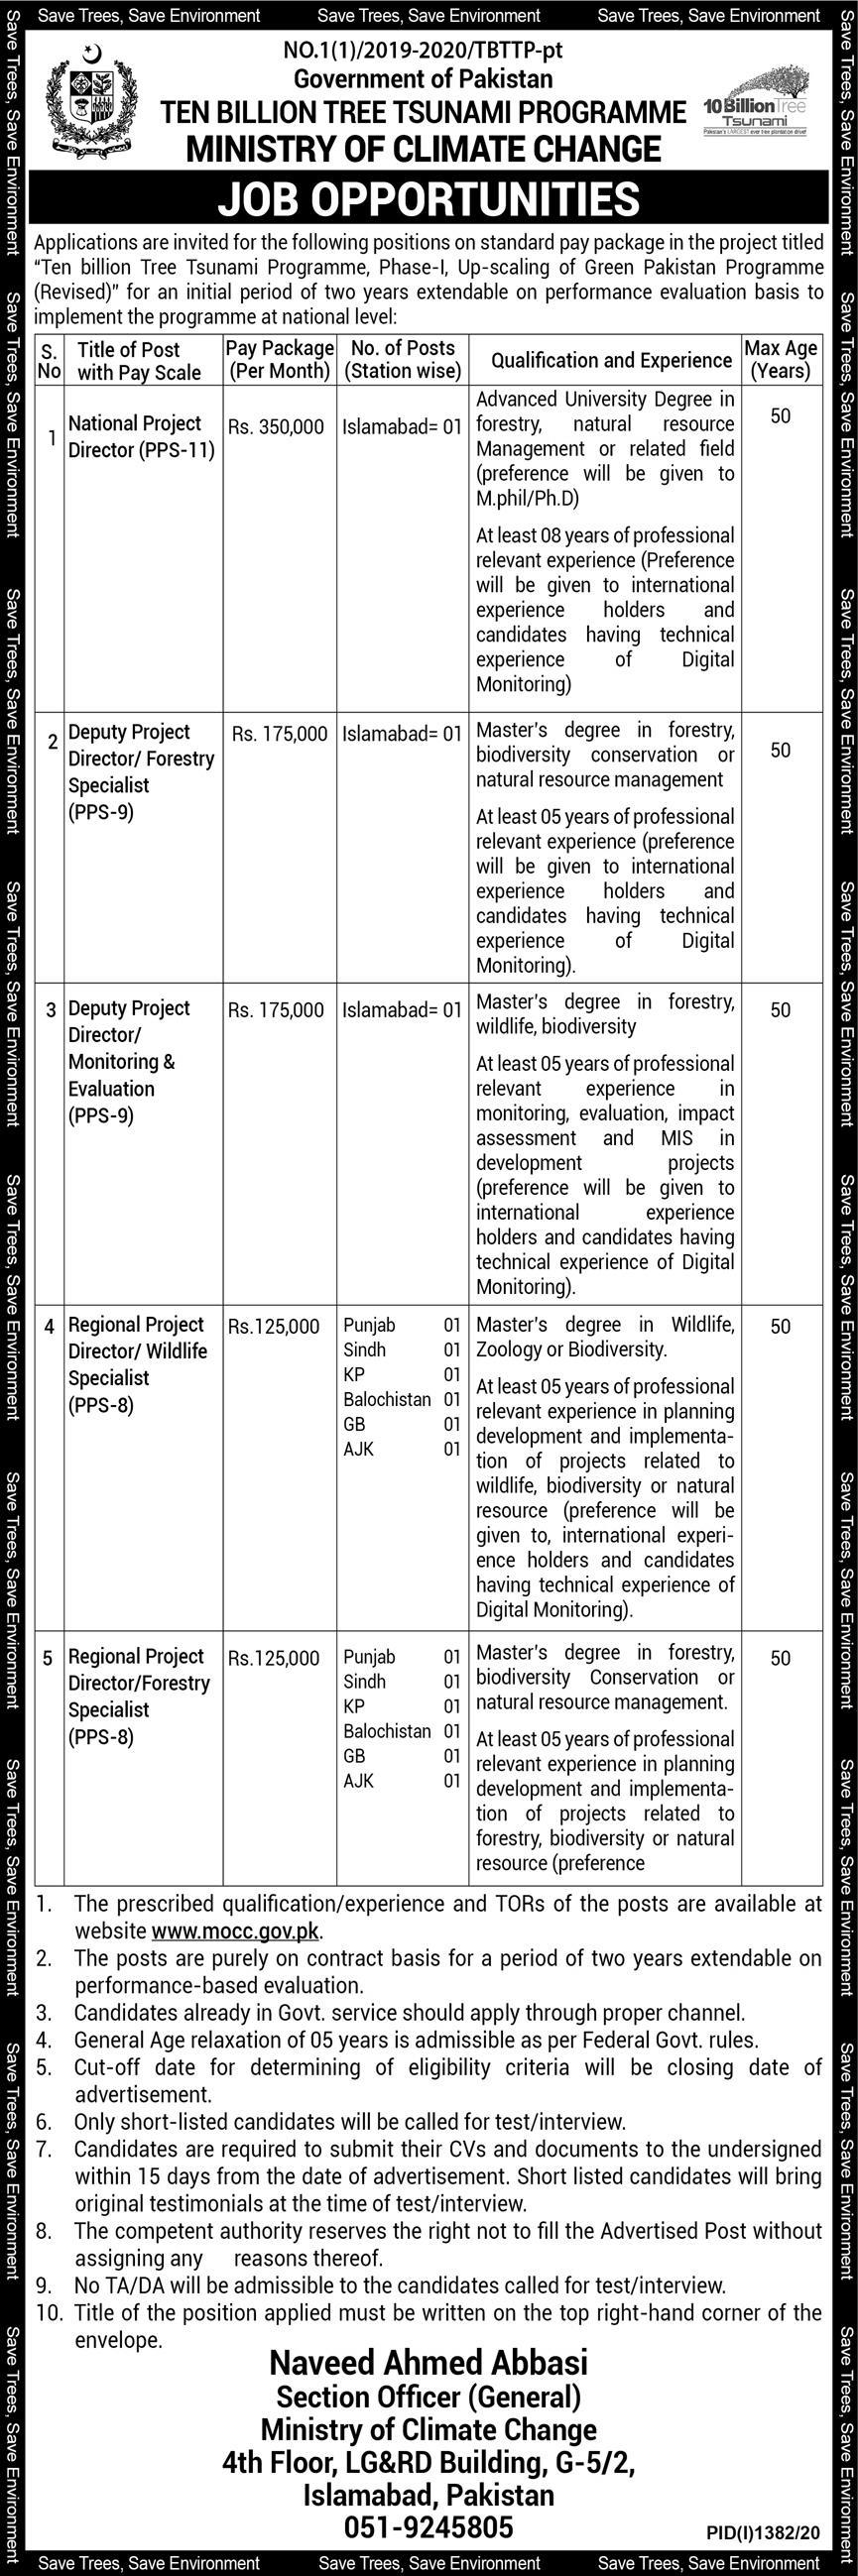 Government of Pakistan Jobs Ten Billion Tree Tsunami Program